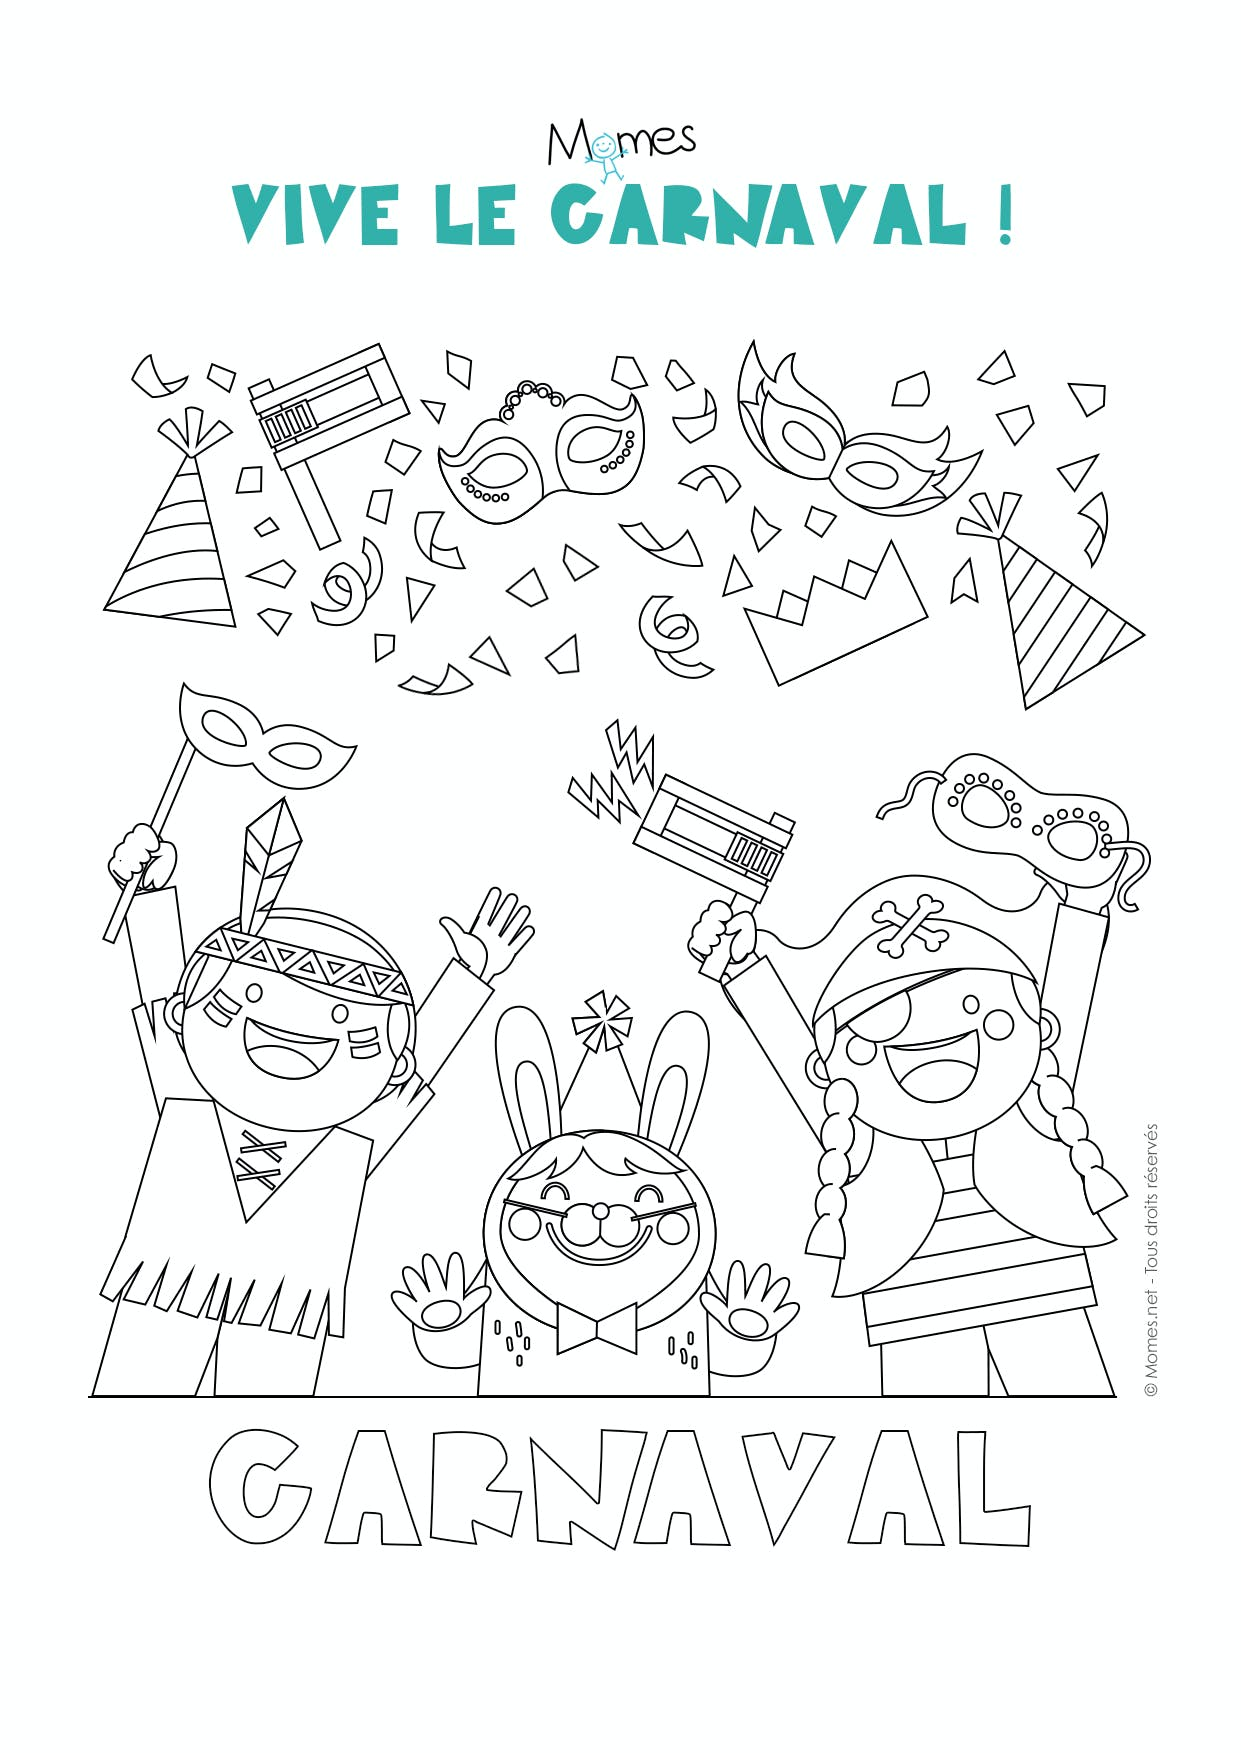 Coloriage carnaval - Momes.net